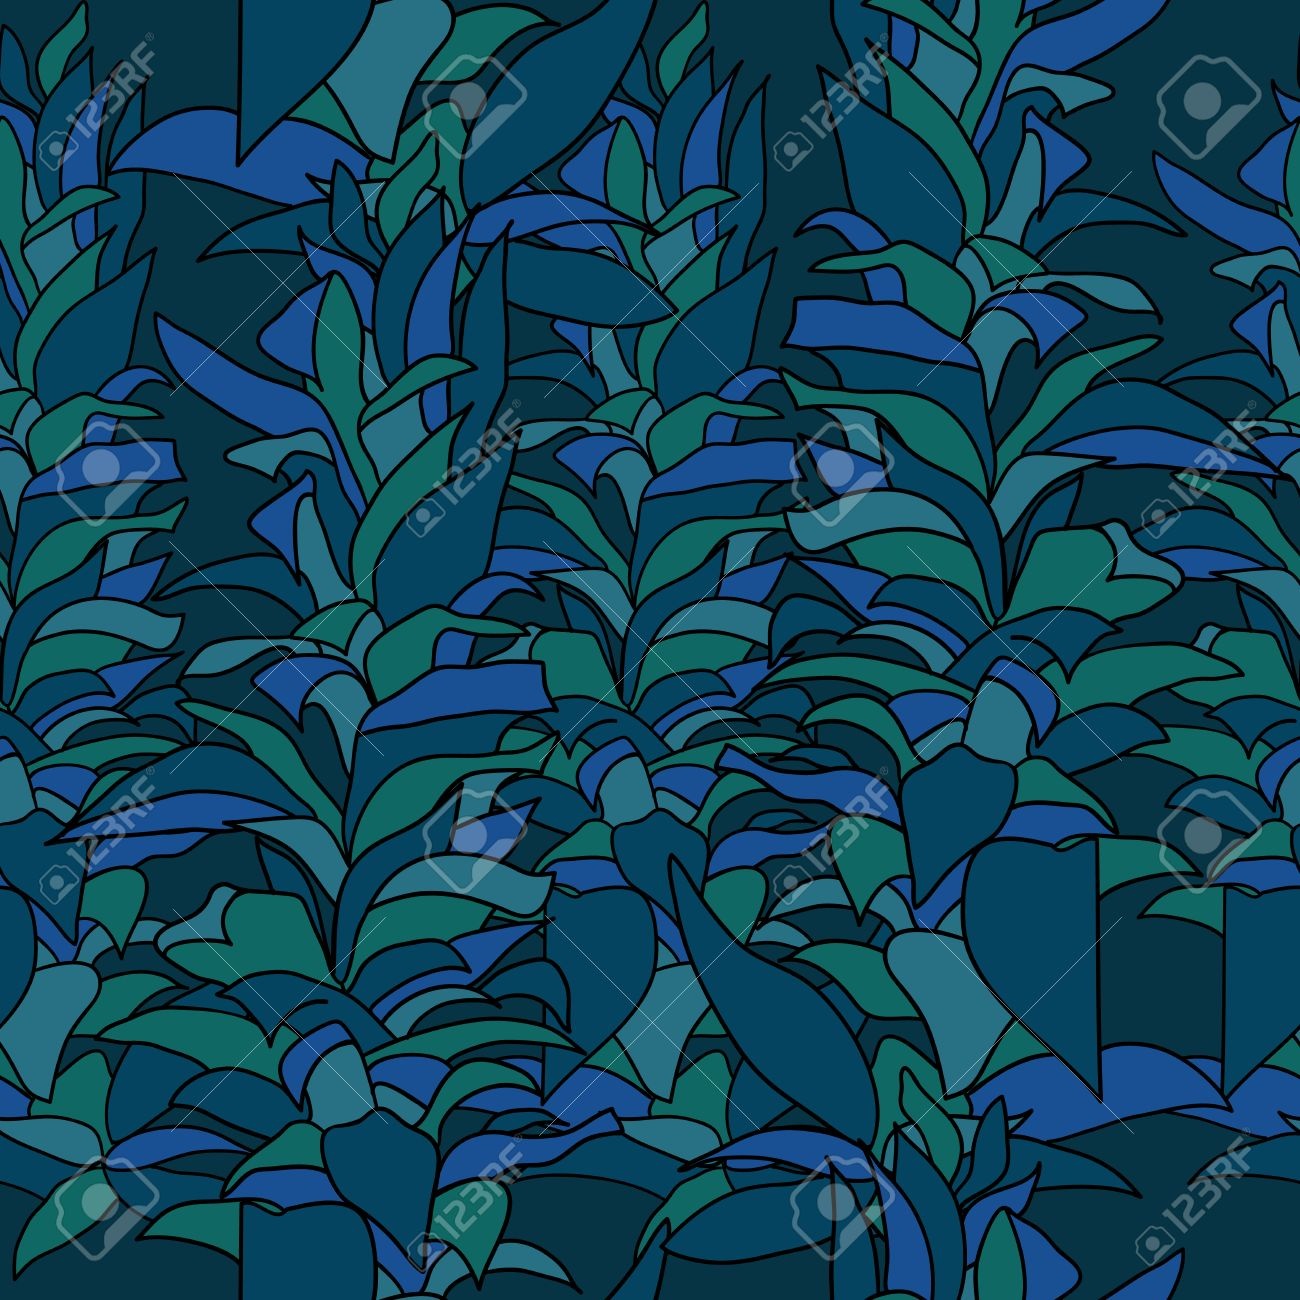 Marine Algae Seamless Pattern Repetition Texture With Underwater